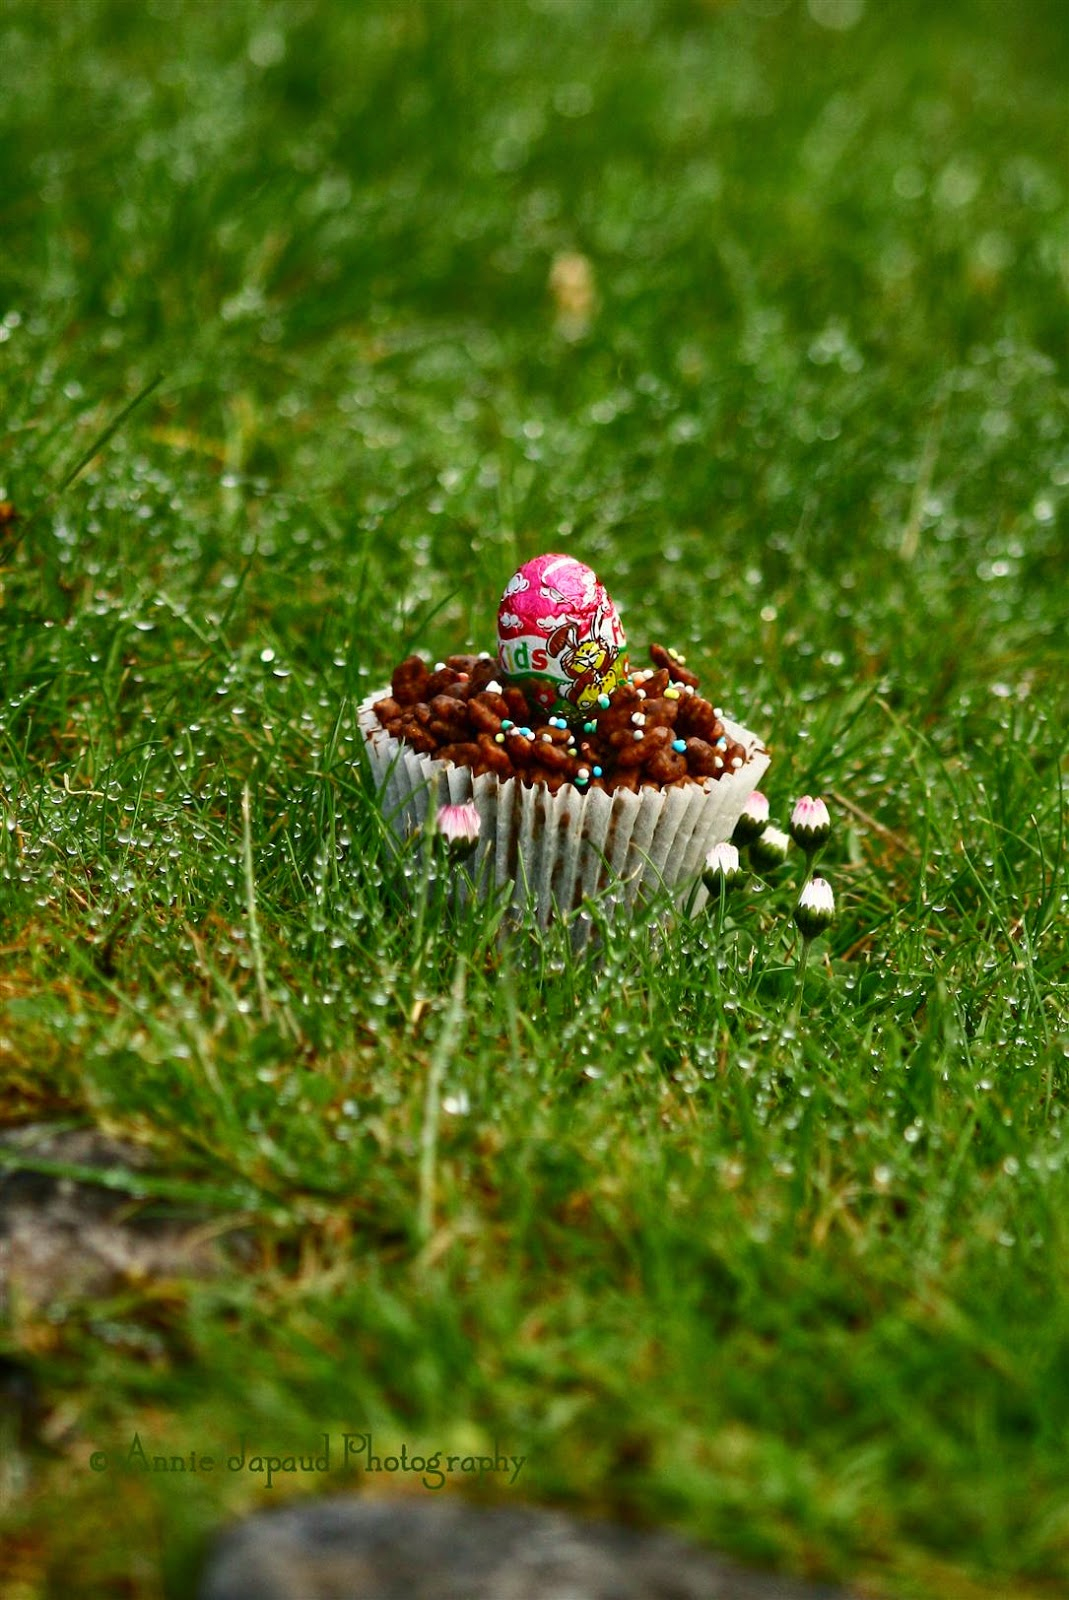 a Chocolate rice krispie cake in the grass